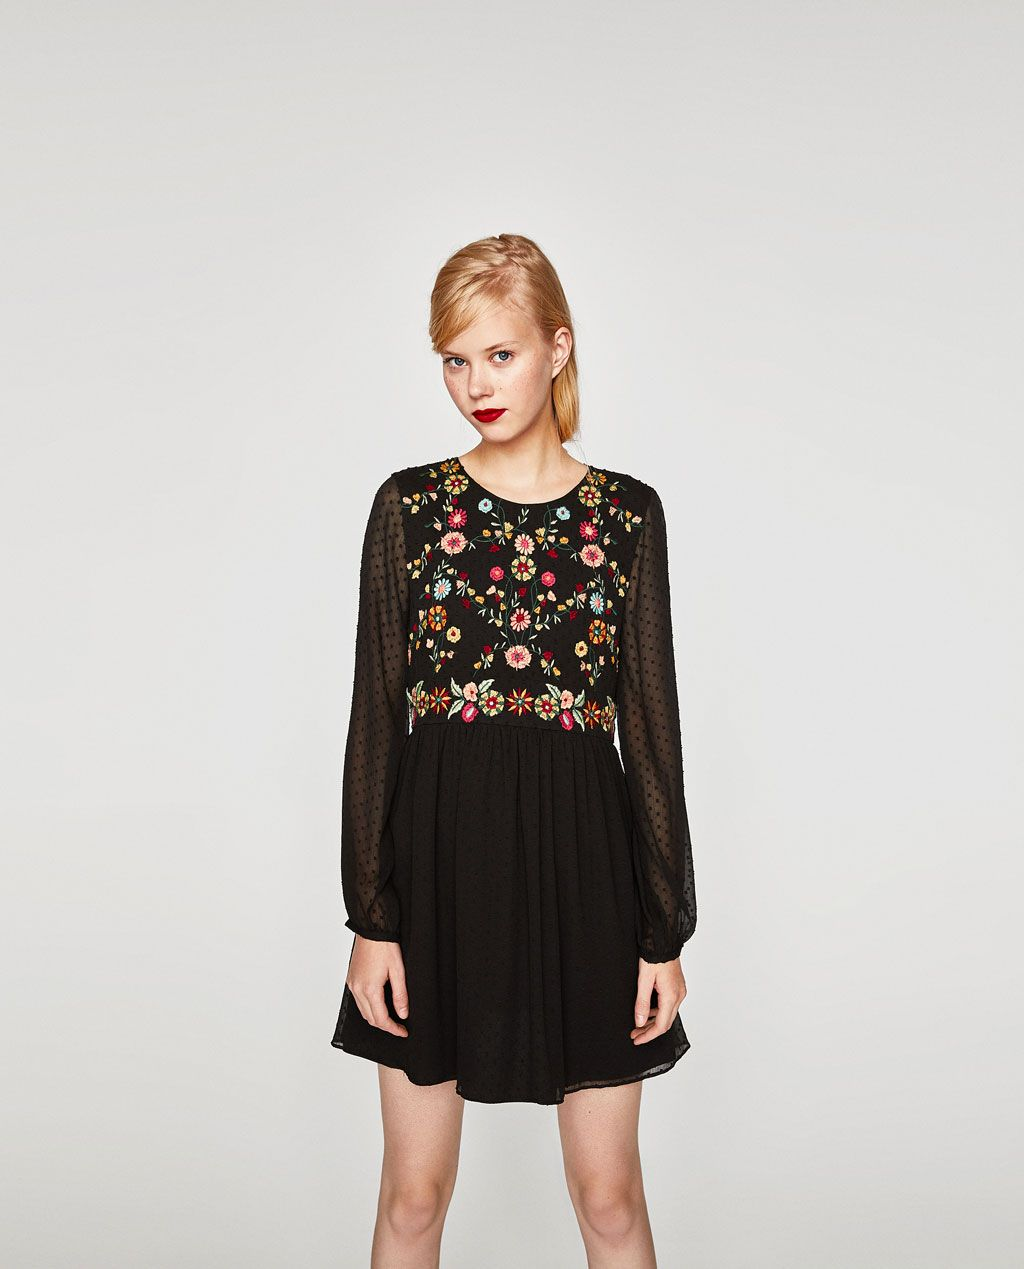 cae46af219b4d Image 2 of EMBROIDERED DOTTED MESH DRESS from Zara